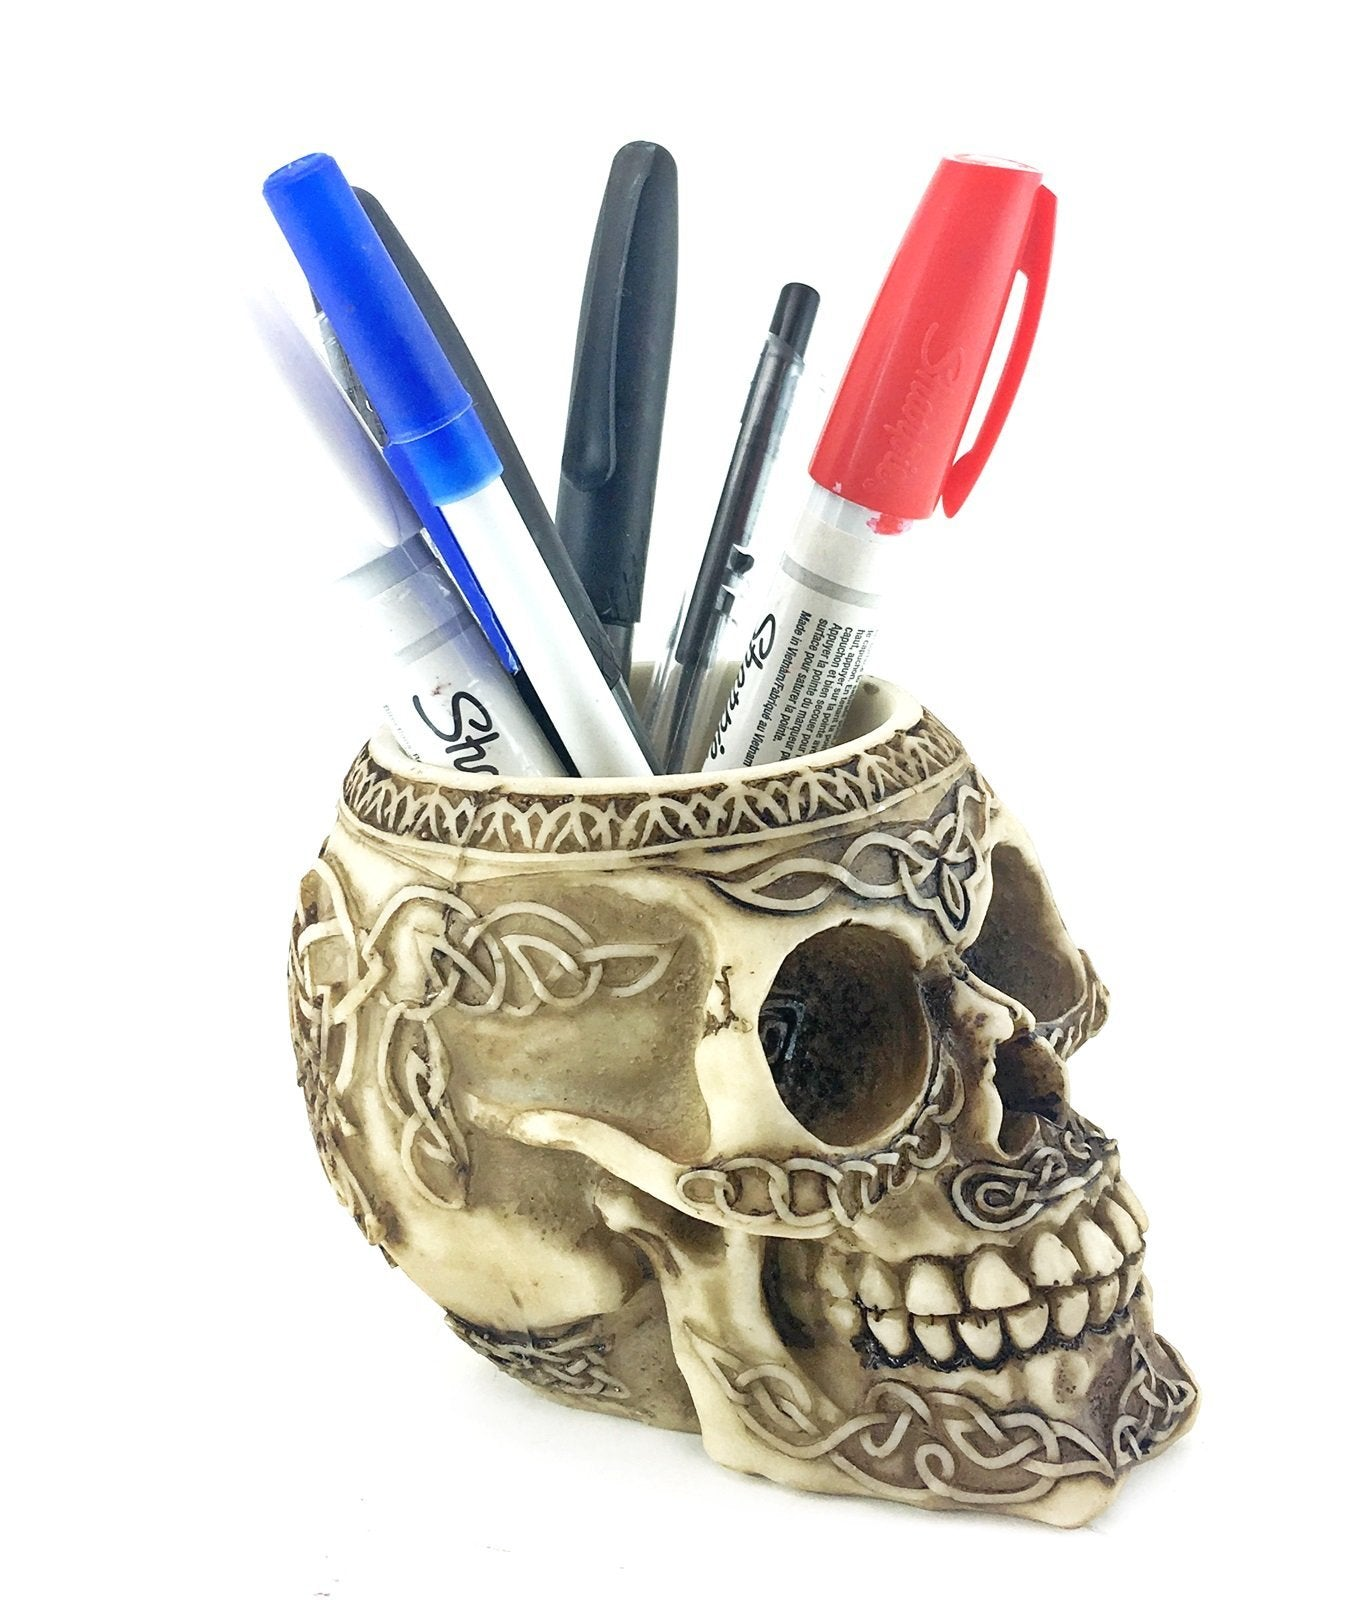 Bellaa 21000 Skull Pencil Holder Celtic Knot Tribal Tattoo. - SonsofOdin Co Goth Viking Biker Jewellry